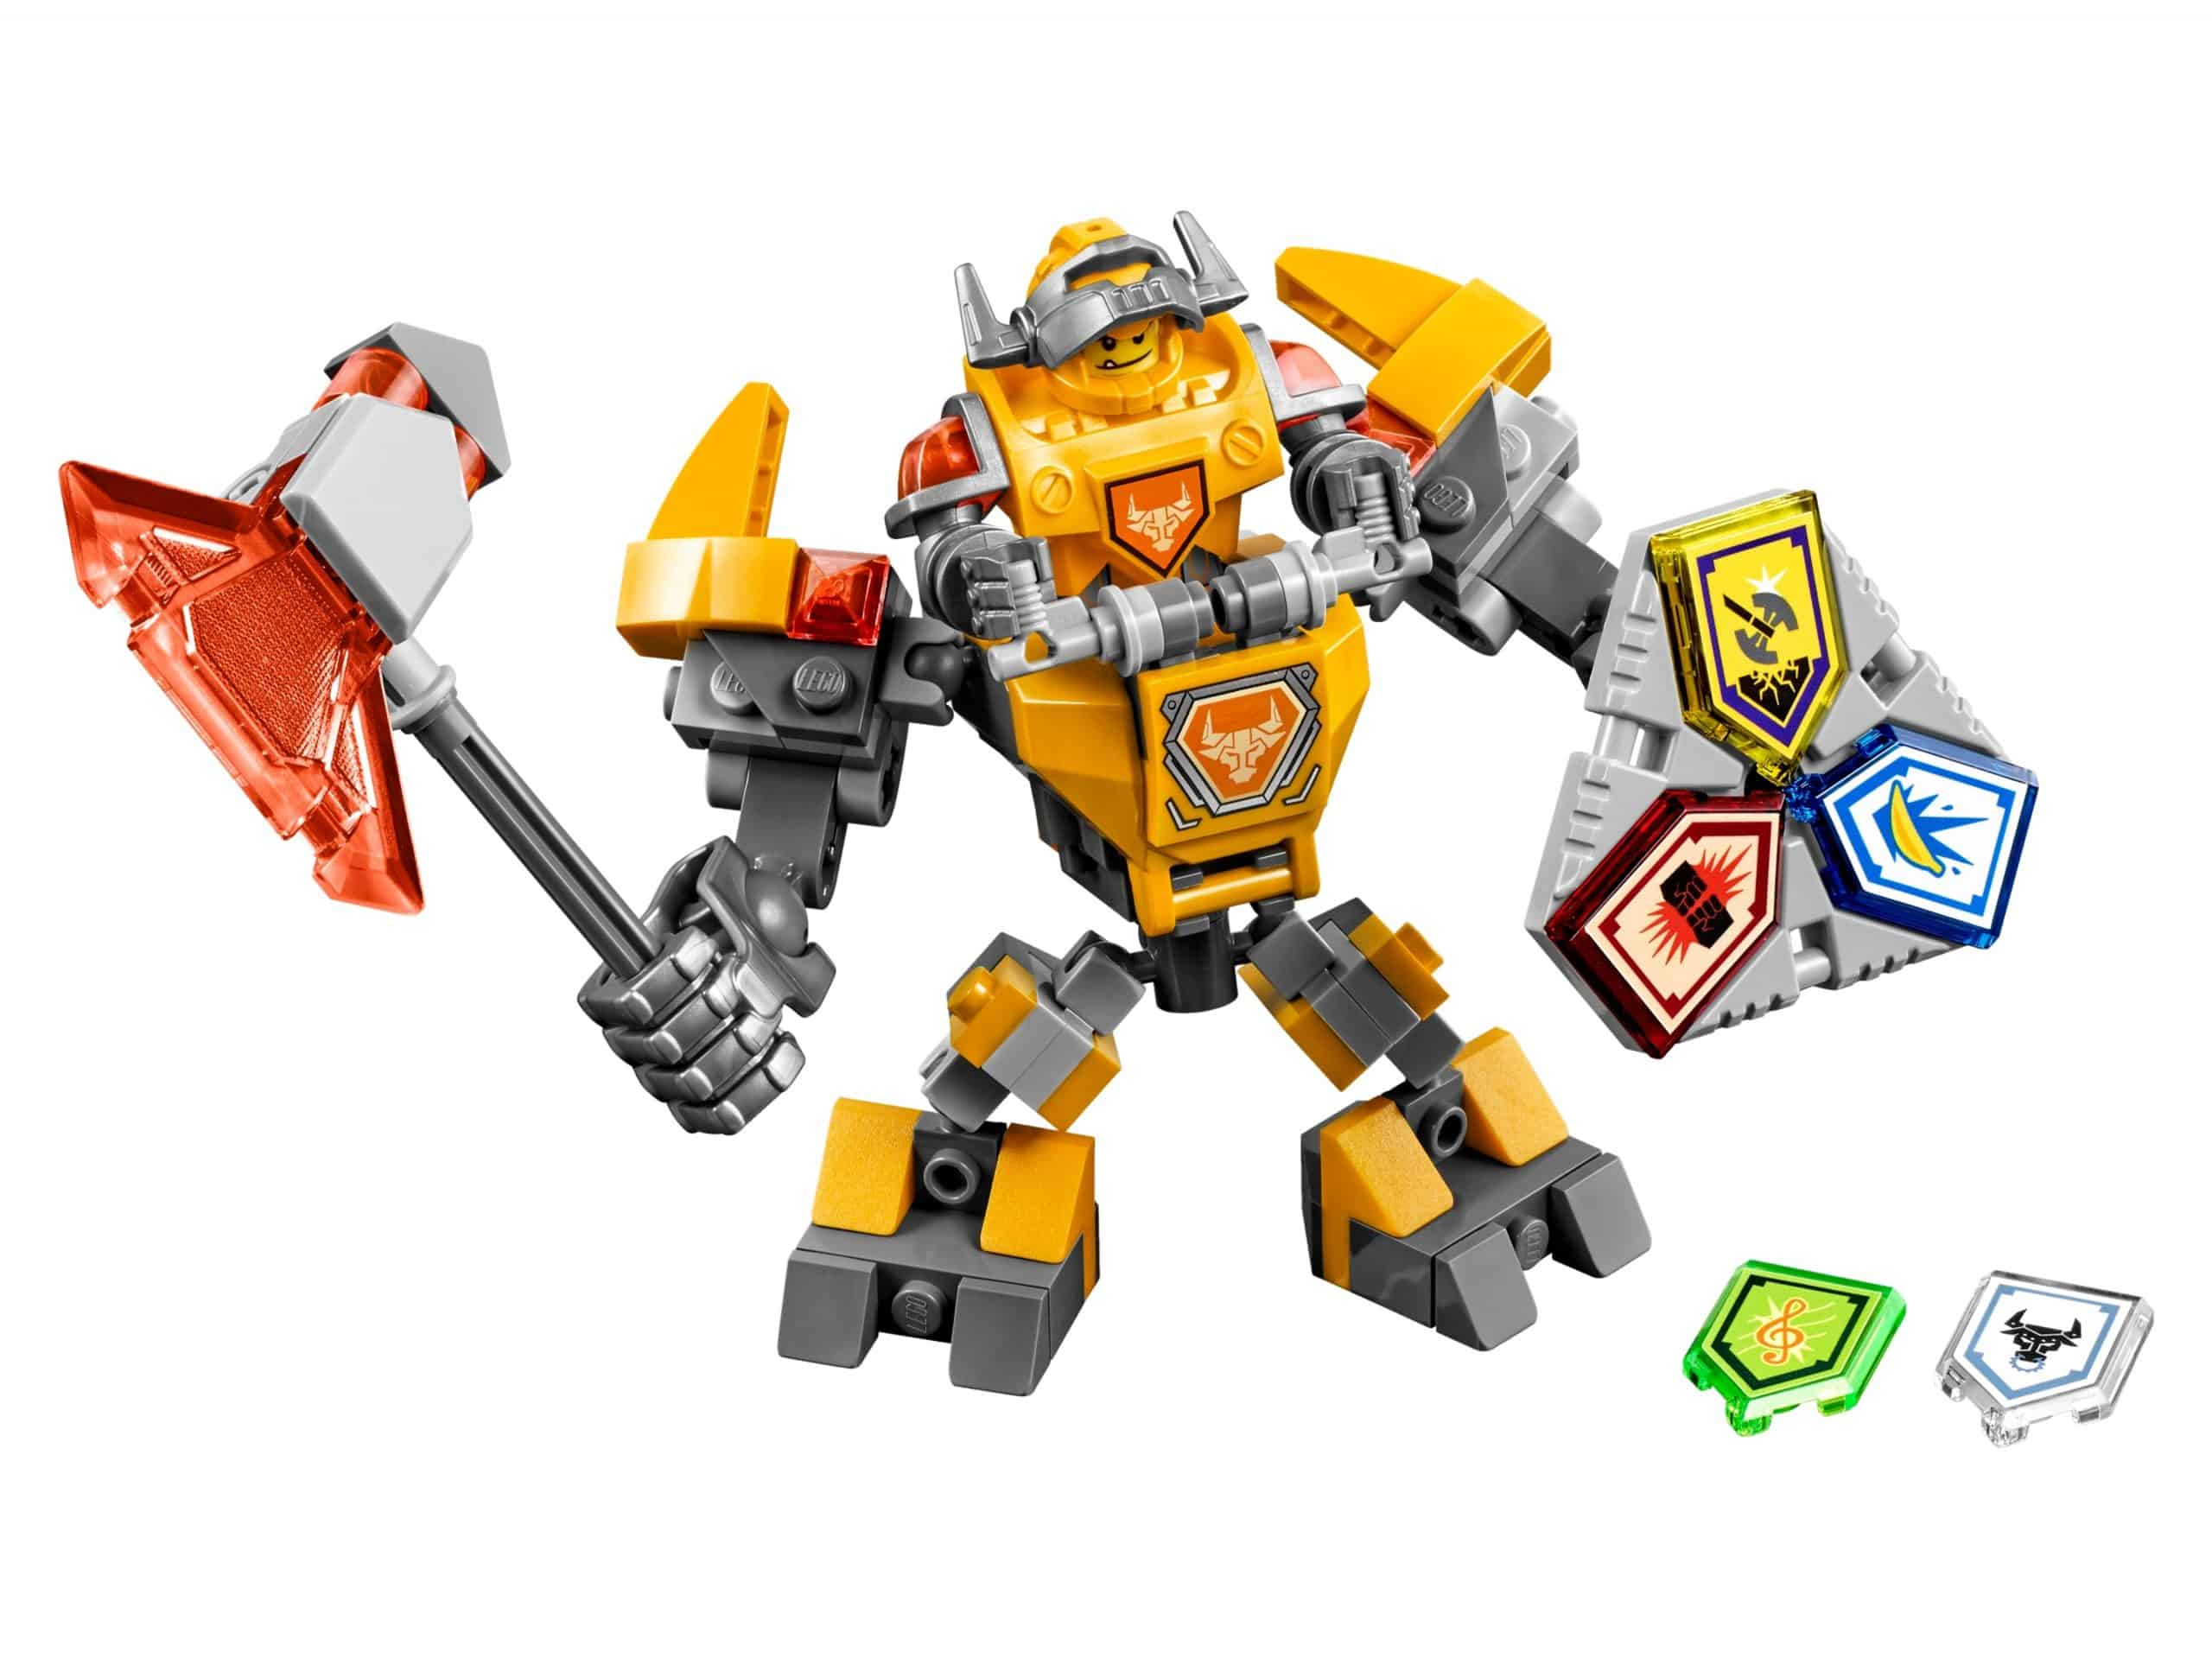 lego 70365 action axl scaled